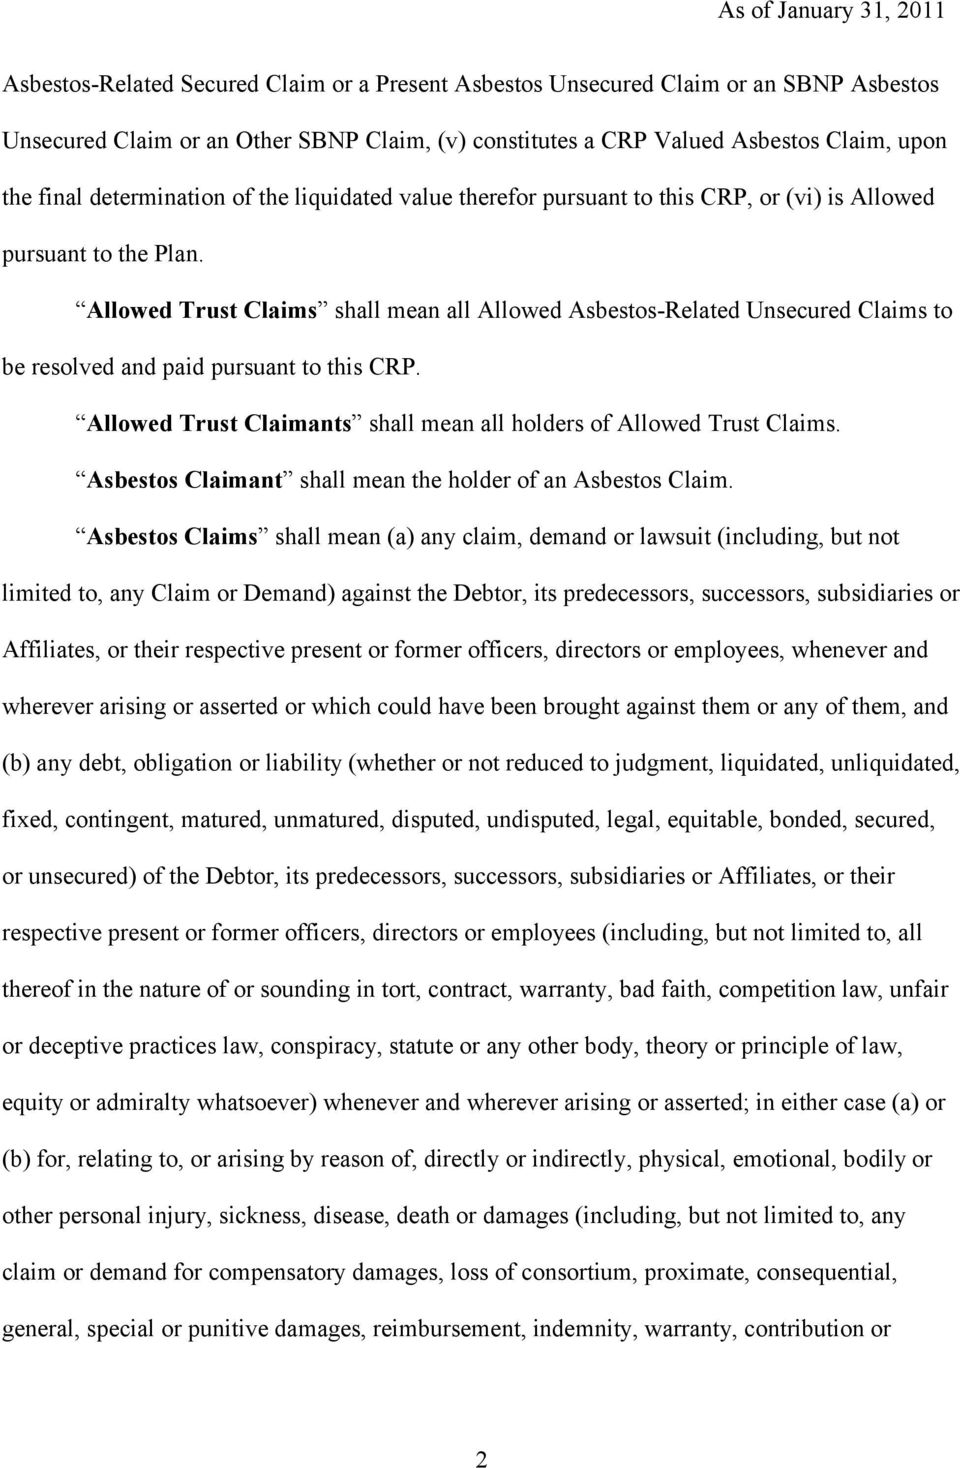 Allowed Trust Claims shall mean all Allowed Asbestos-Related Unsecured Claims to be resolved and paid pursuant to this CRP. Allowed Trust Claimants shall mean all holders of Allowed Trust Claims.